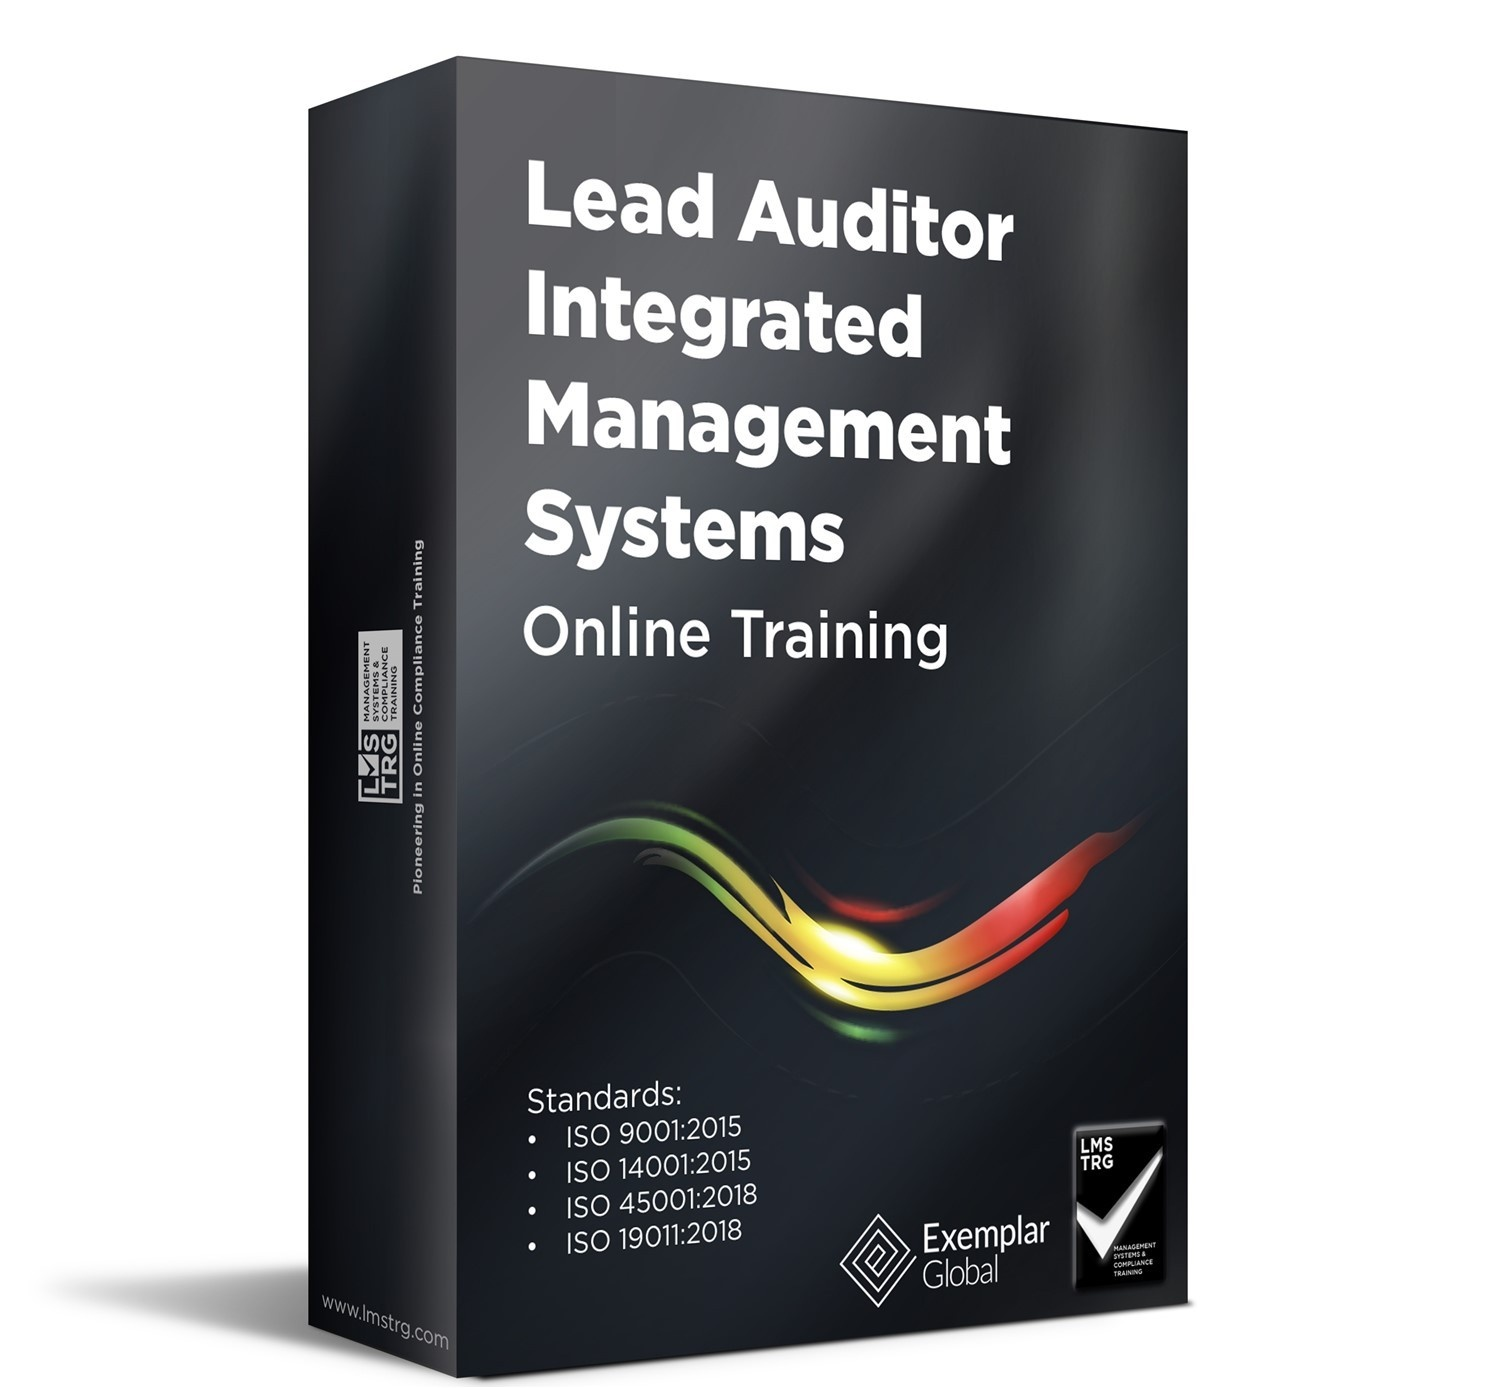 ISO Integrated Management Systems (IMS) External/Lead Auditor Online Training